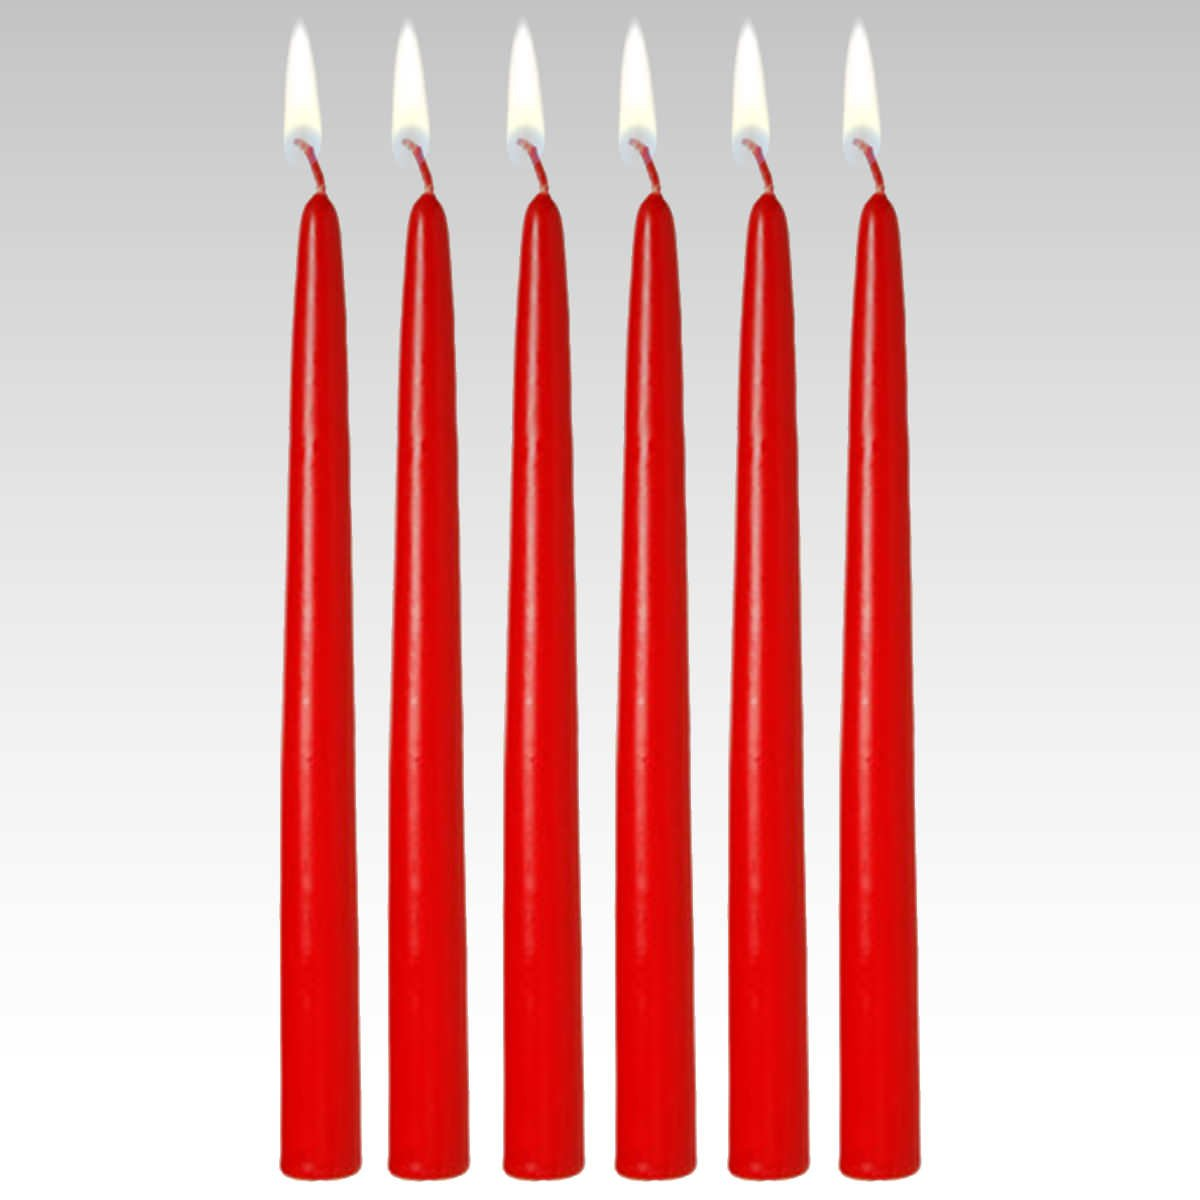 Candles4Less - Bulk 12'' Red Unscented Taper Candles (144 Pieces), Red Dripless Taper Candles with Lead Free Cotton Wicks Made in USA